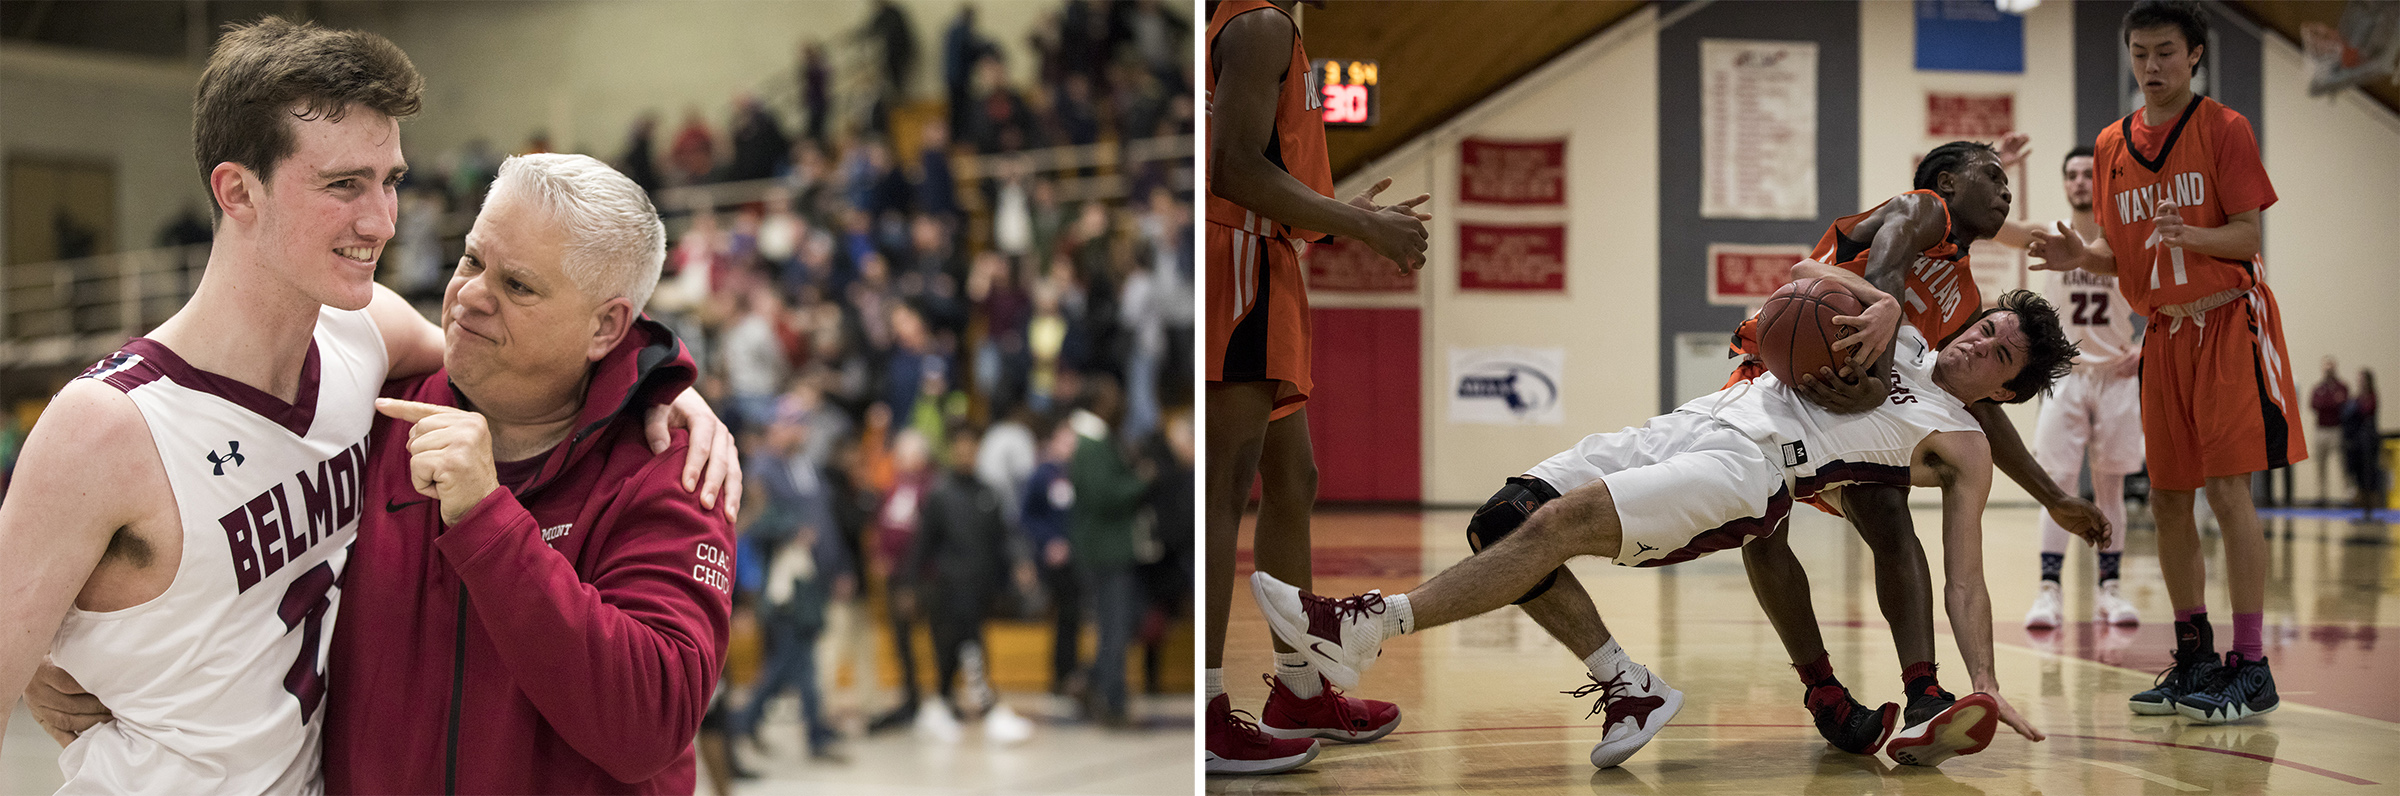 (Left) Belmont High senior captain Jake Herlihy, left, celebrates with Chuck Mantsavinos after winning the game against Arlington in Belmont on Mar. 1, 2019. (Right) Westborough senior Quinn Donovan is fouled by Wayland junior Jaden Brewington during the game at the Kneller Center in Worcester on Mar. 4, 2019.